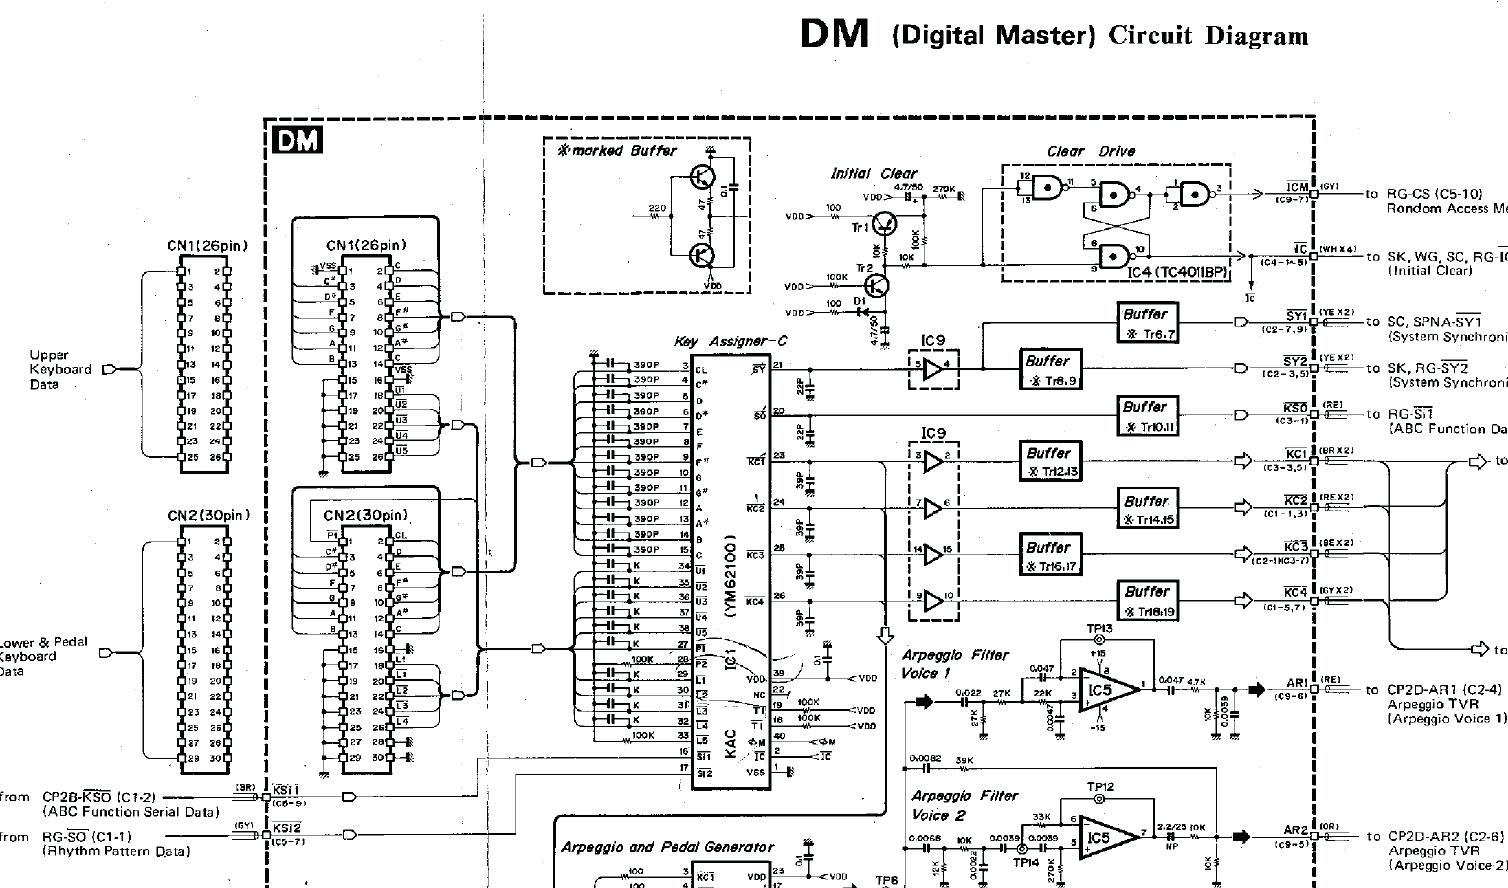 package air conditioning unit wiring diagram auto electricalpackage air conditioning unit wiring diagram